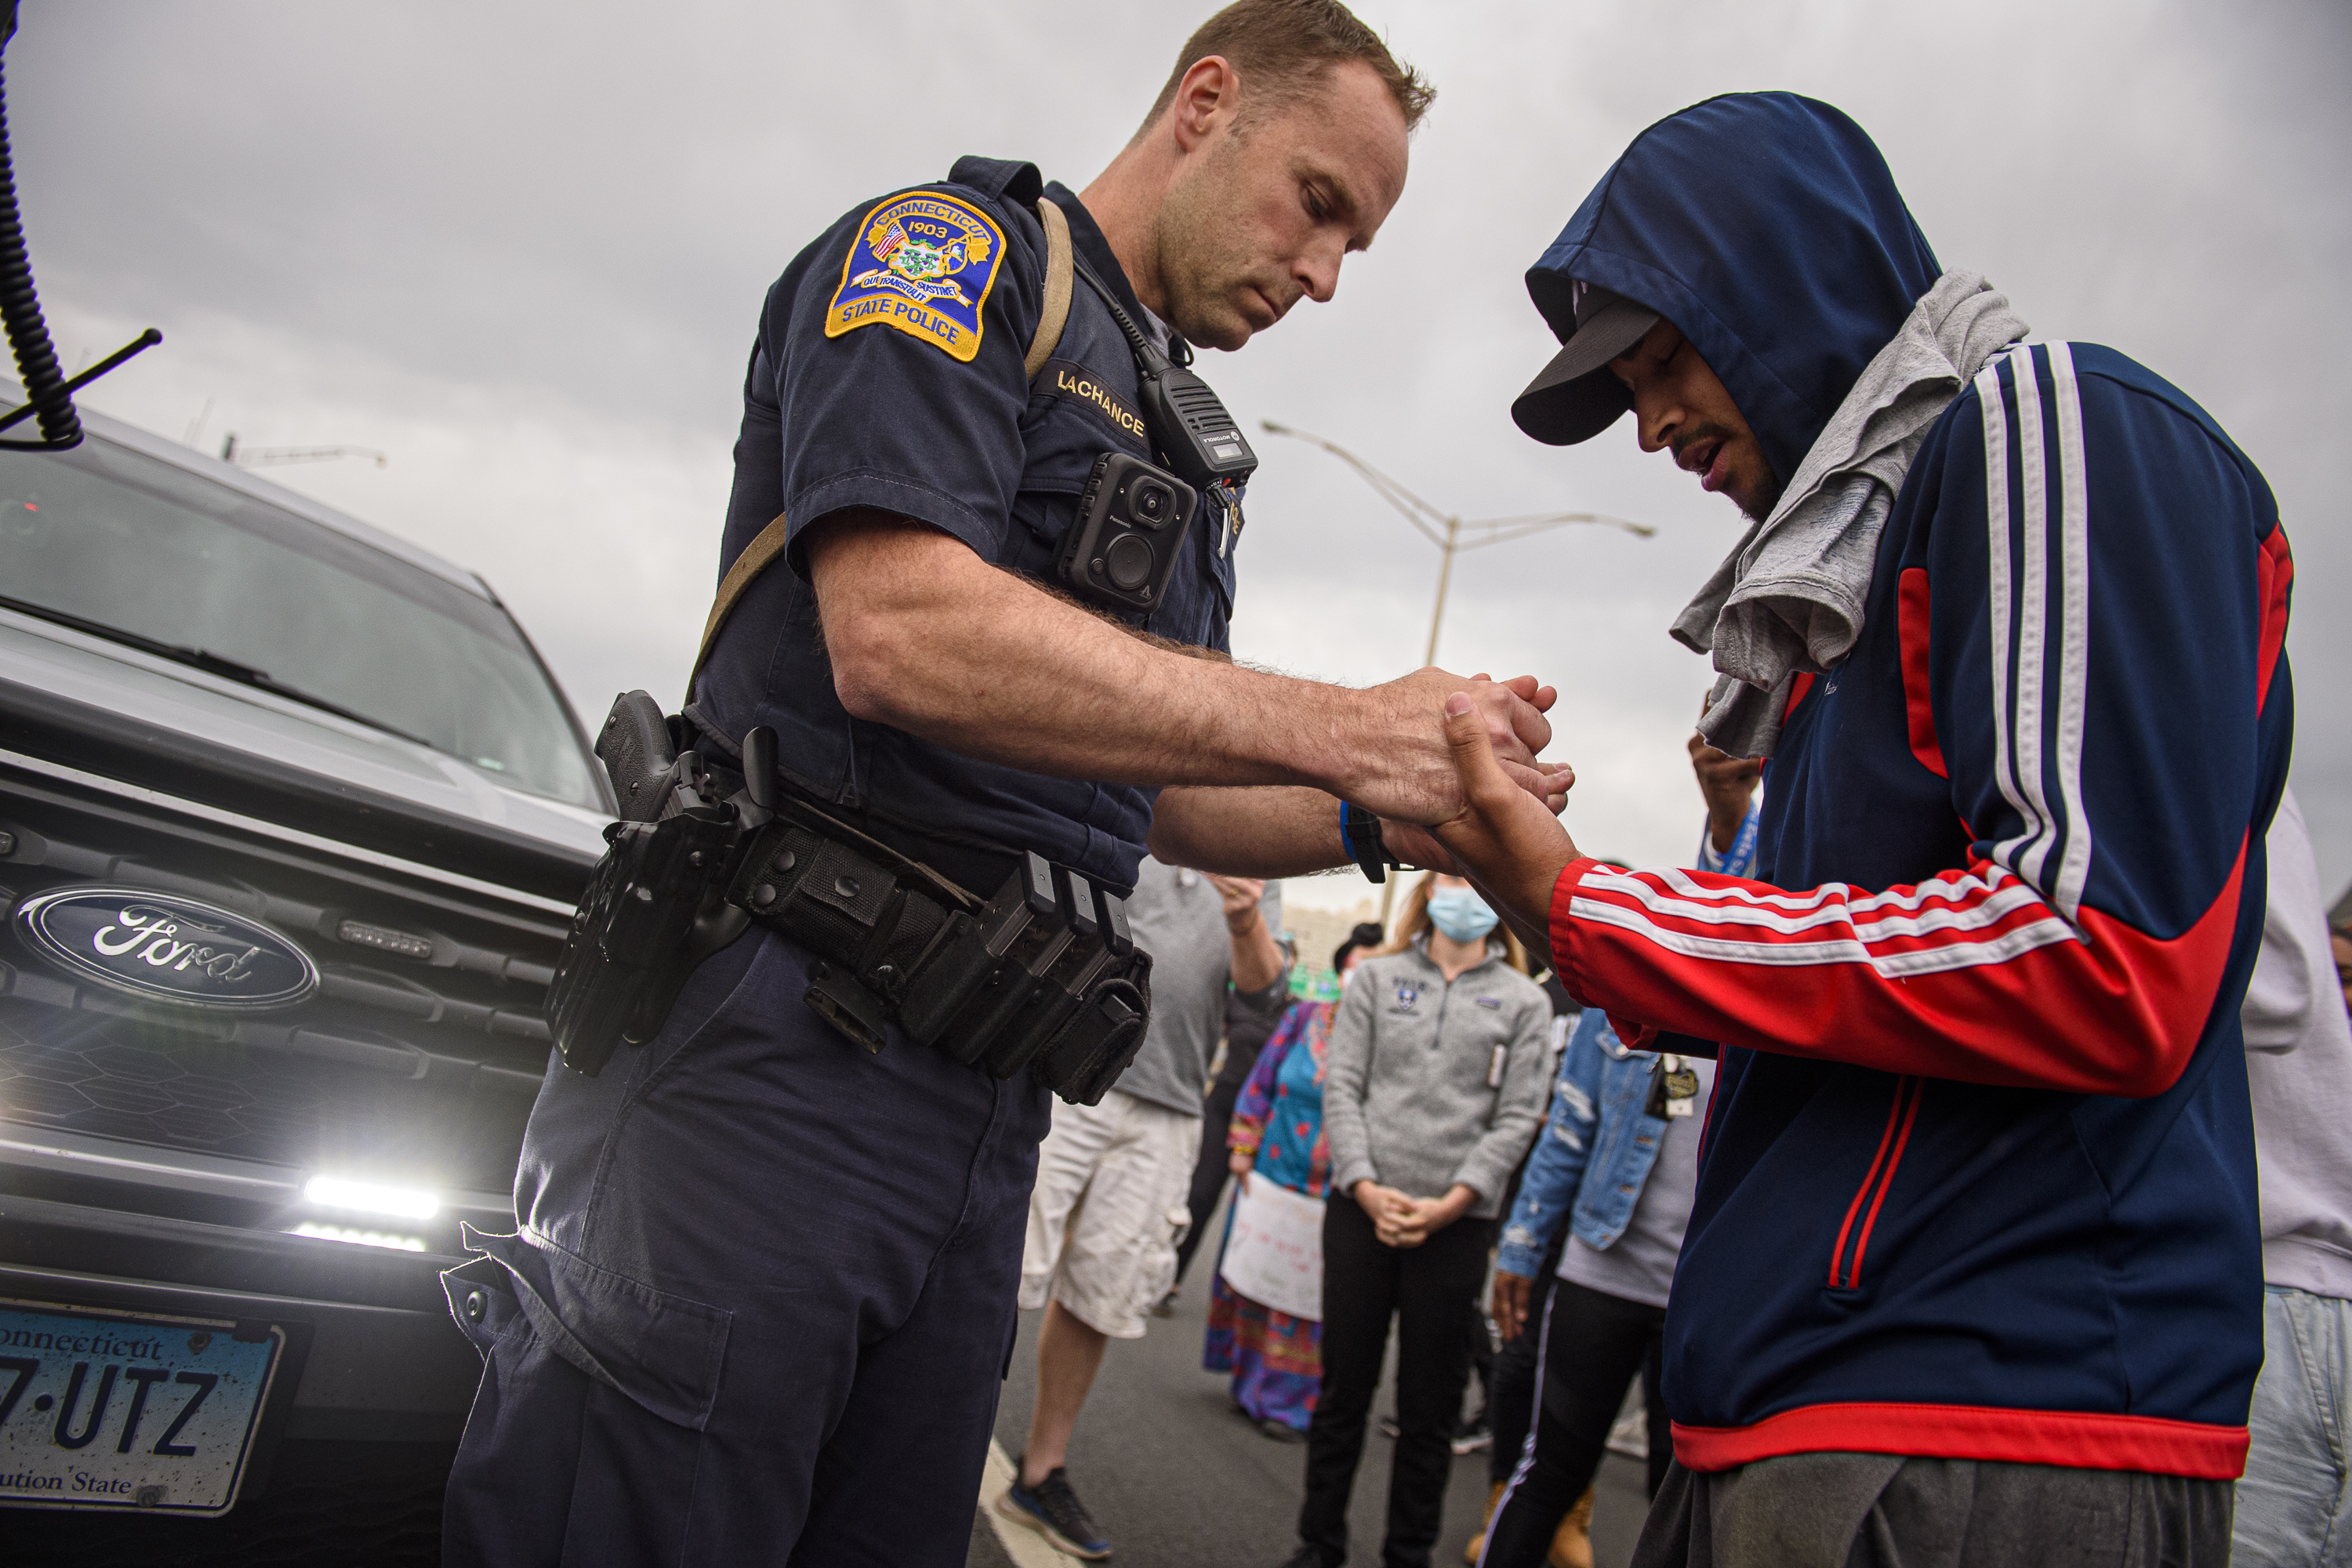 A Connecticut State Trooper prays with Nathaniel Swift, right, in the middle of Interstate 84 after it was closed down by hundreds protesting the death of George Floyd